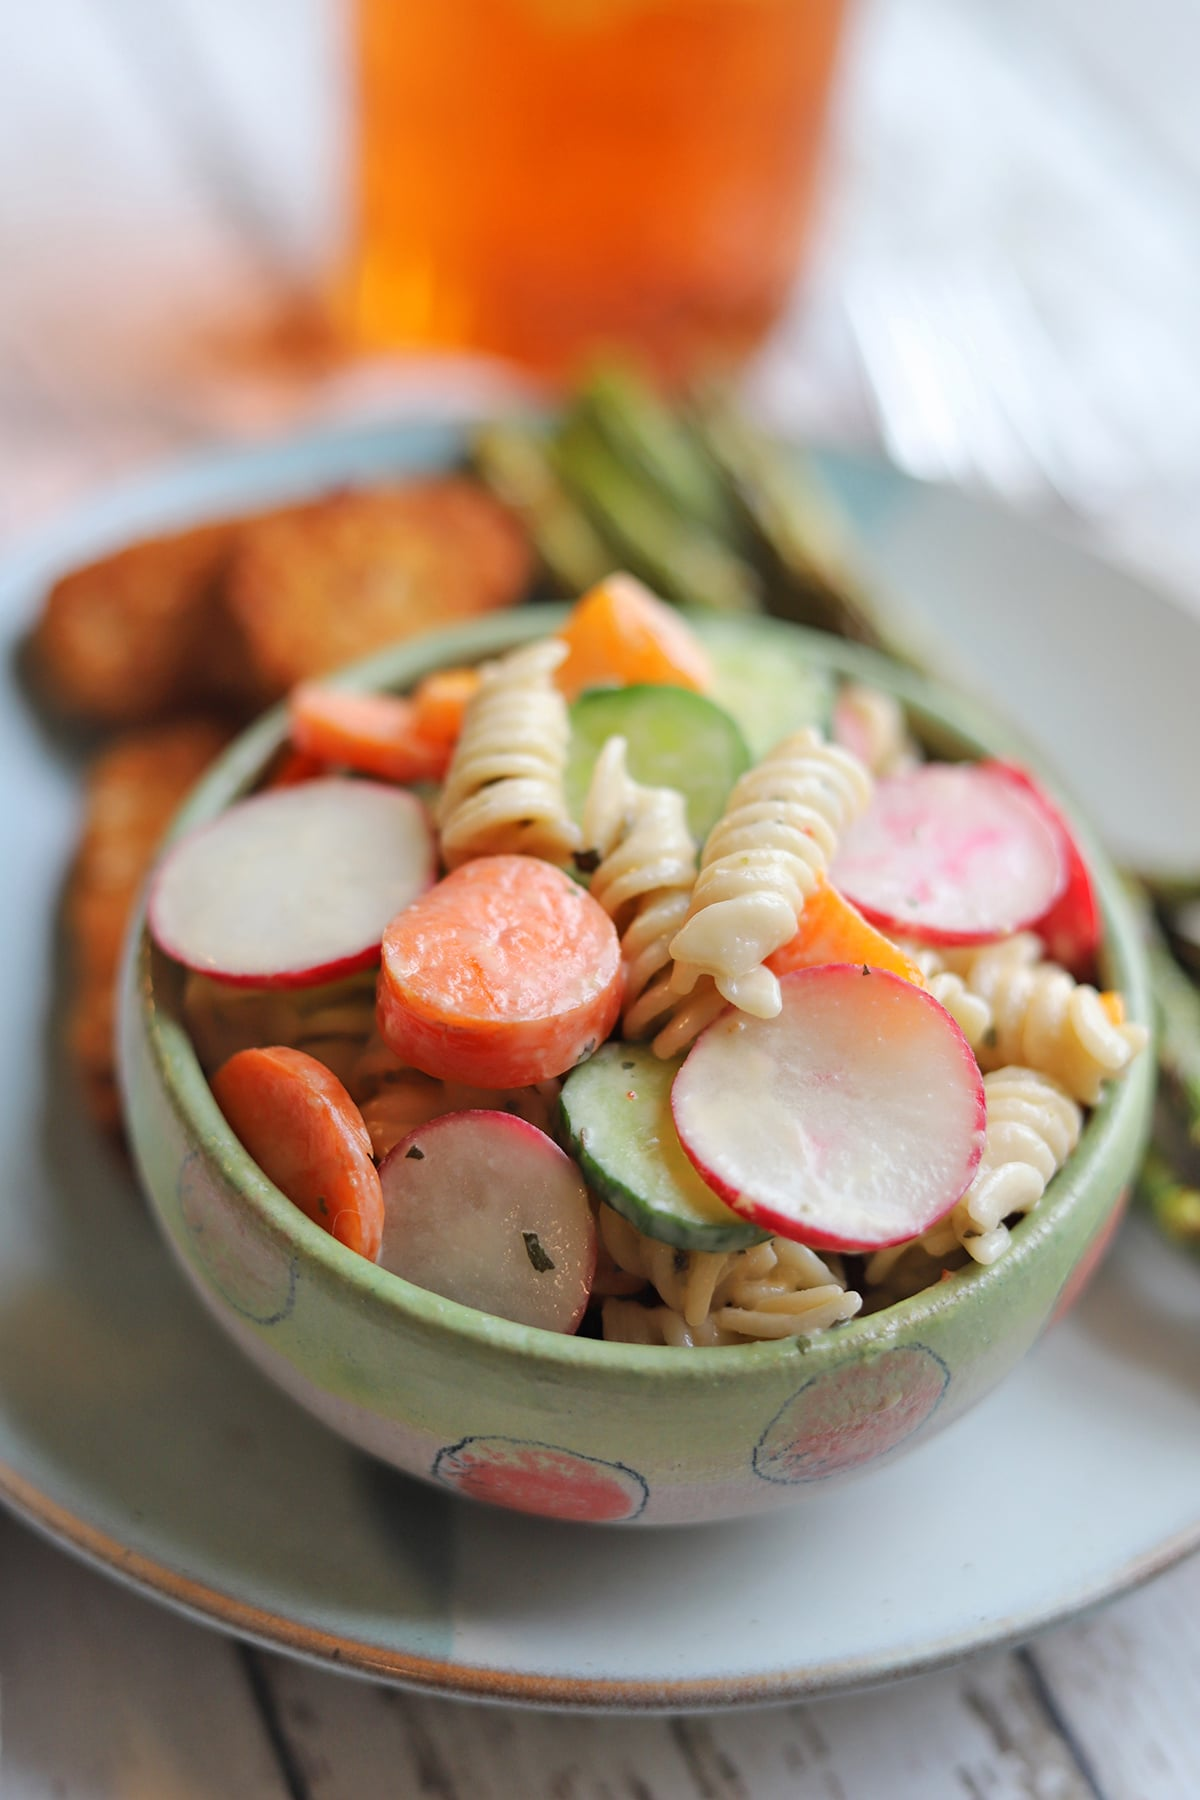 Close-up bowl of pasta salad by vegan chick'n strips and asparagus.